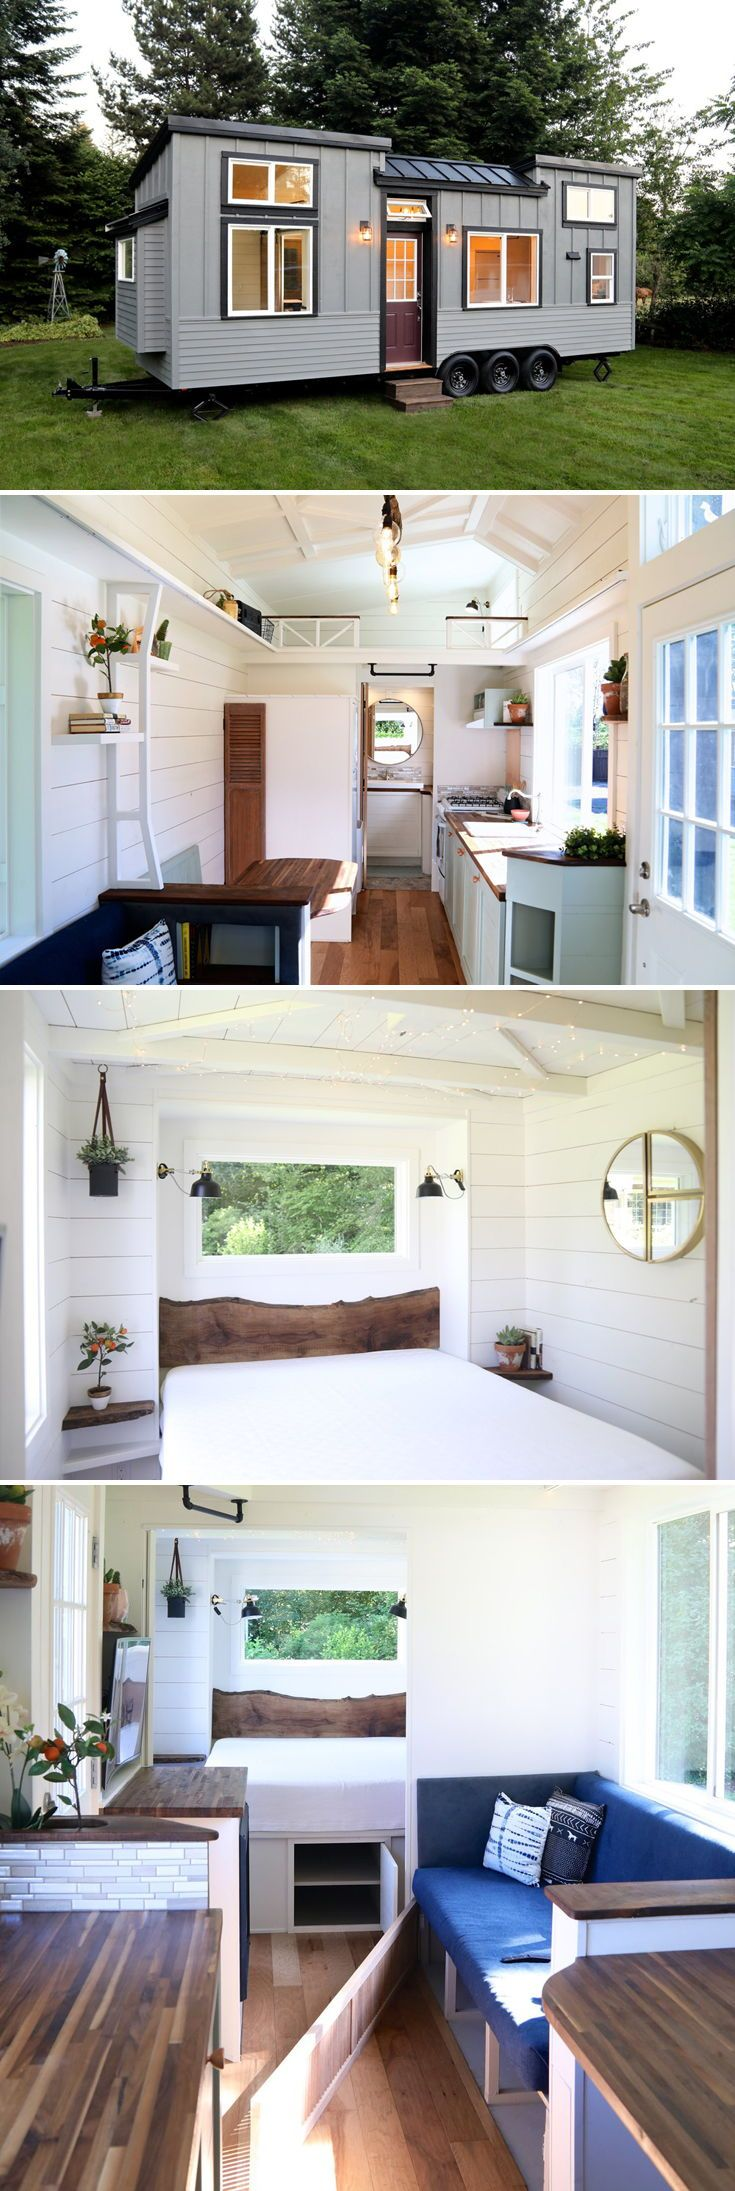 Pacific Pioneer By Handcrafted Movement Tiny Houses